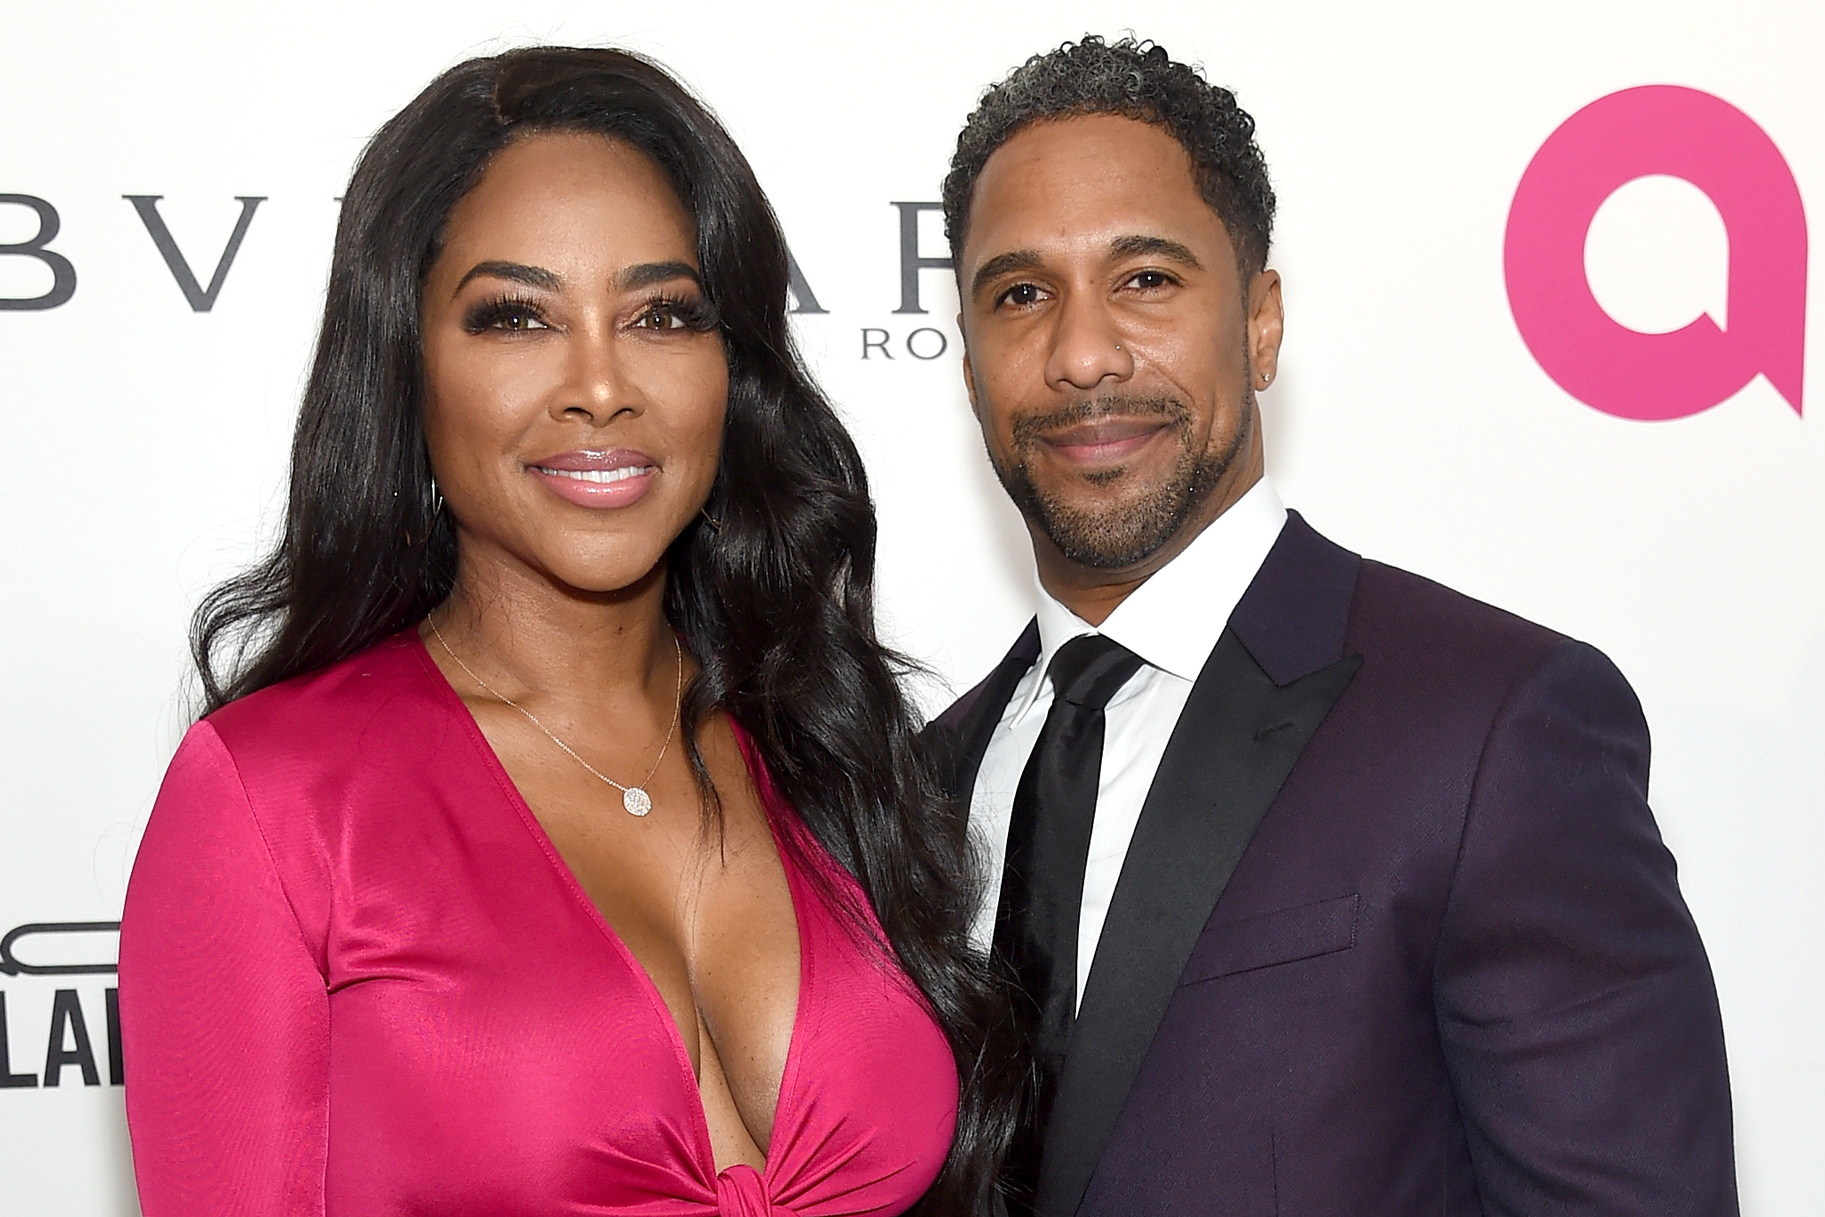 Kenya Moore's Fans Are Outraged After Seeing This Video